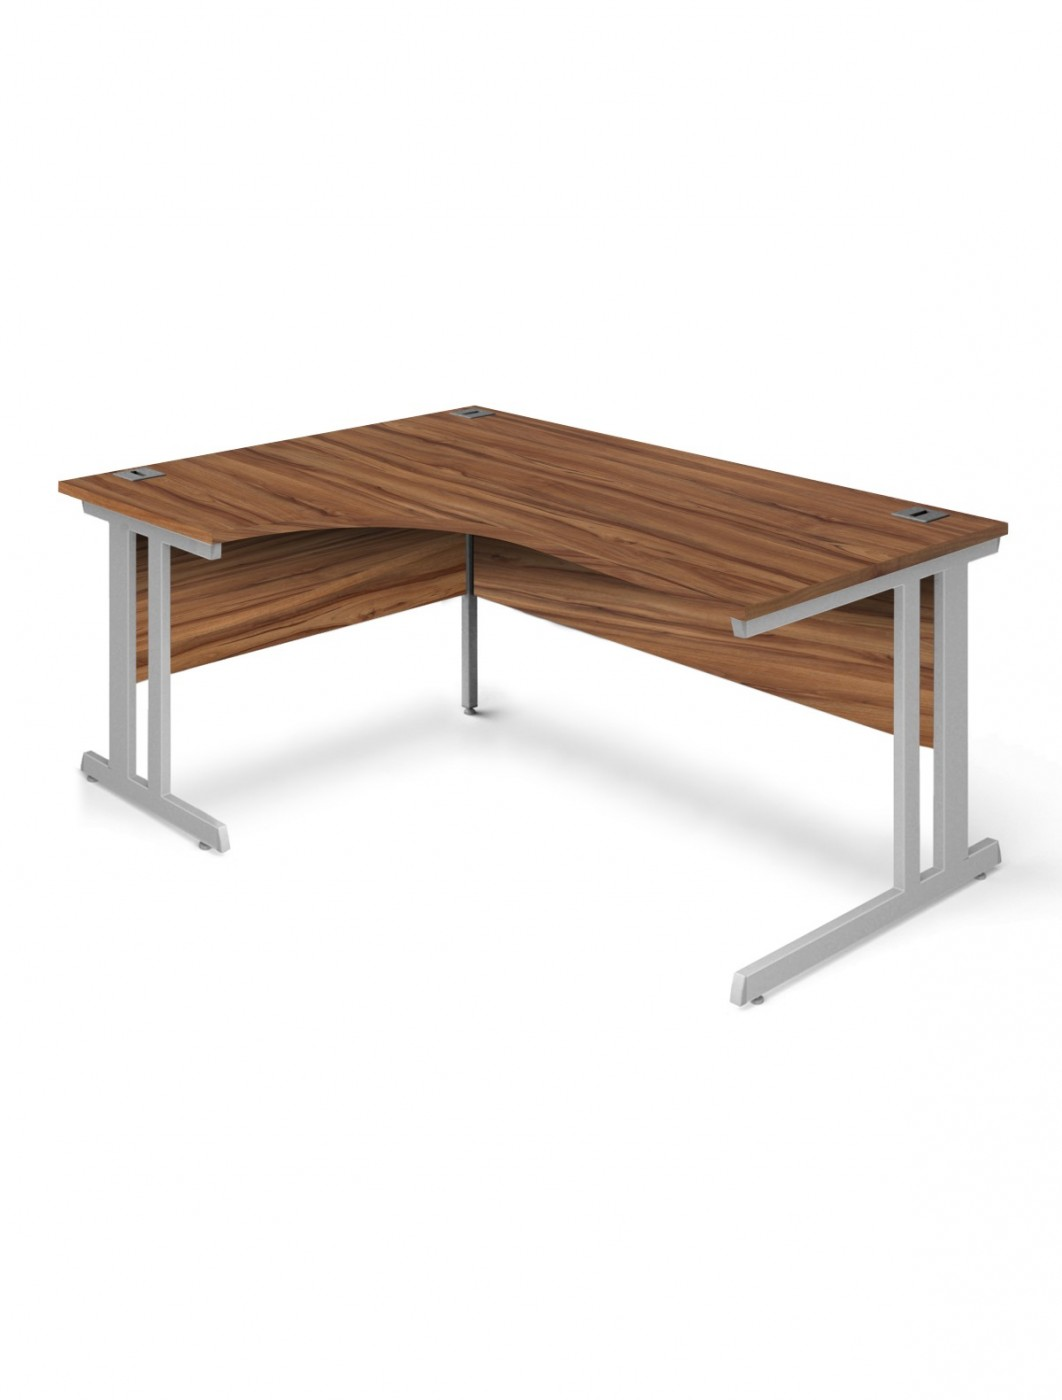 Series L Adjustable Height Single Desk Walnut 57 Walnut Office Desk 1600mm Aspire Ergo Desk Et/ed/1600/rl